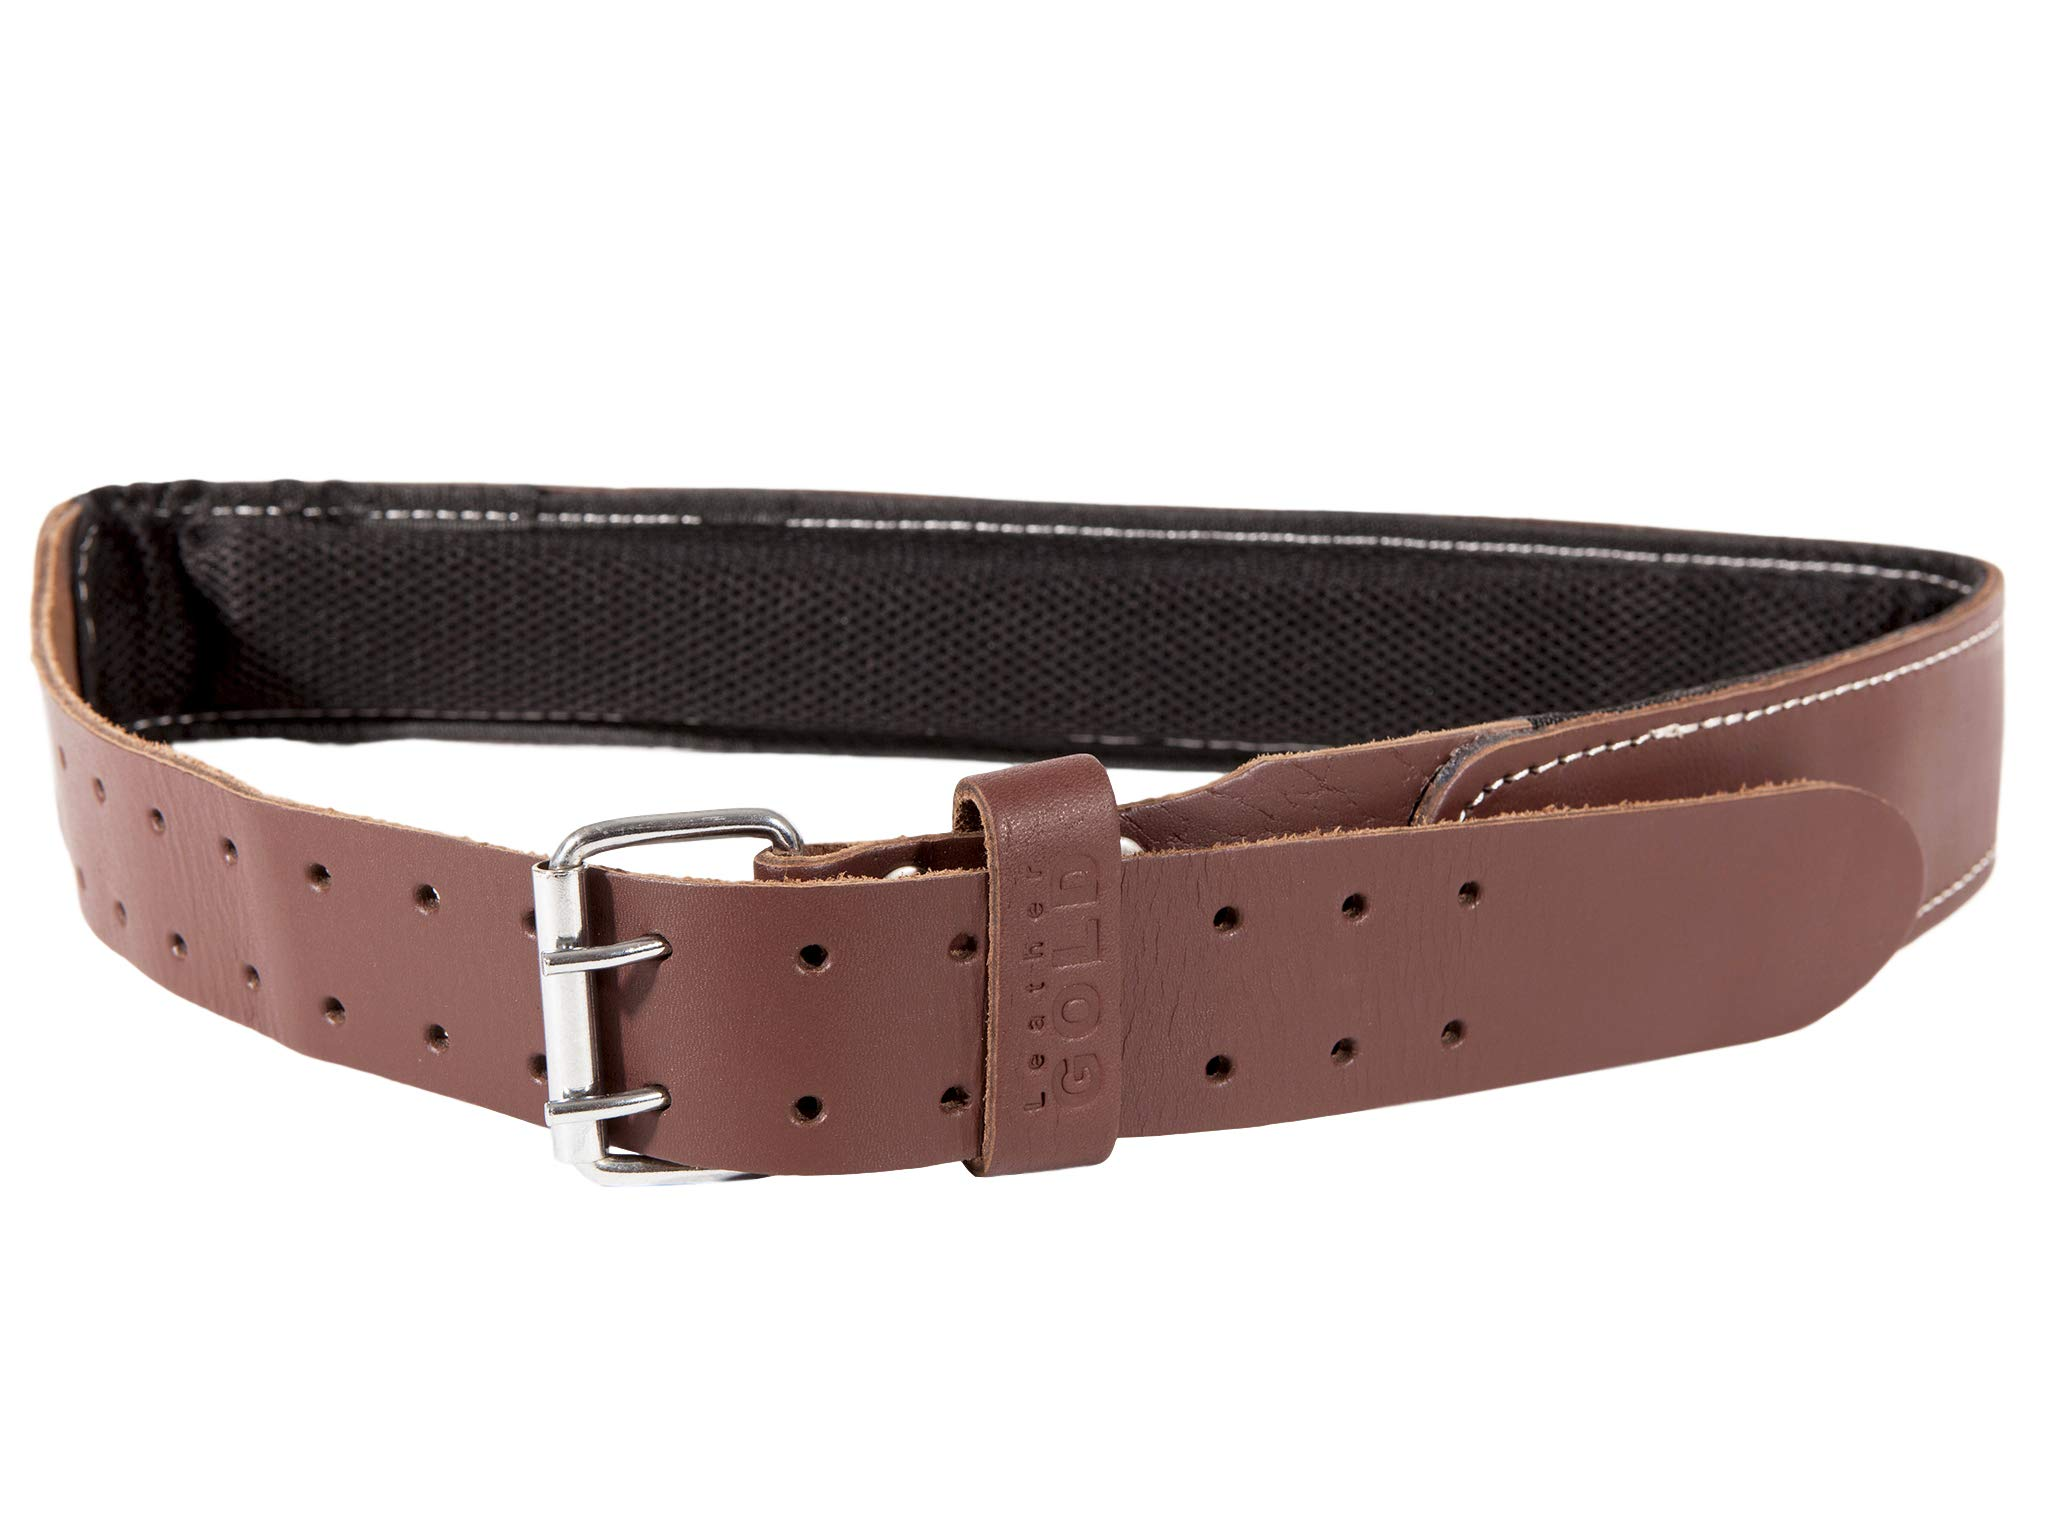 Leather Gold Padded Tool Belt 2.5 Inch Wide | Genuine Grain Leather Belt with Double Prong Buckle and Two Hole Rows | Comfortable Mesh and Foam Padding | Built Tough For Pouches and Construction Tools